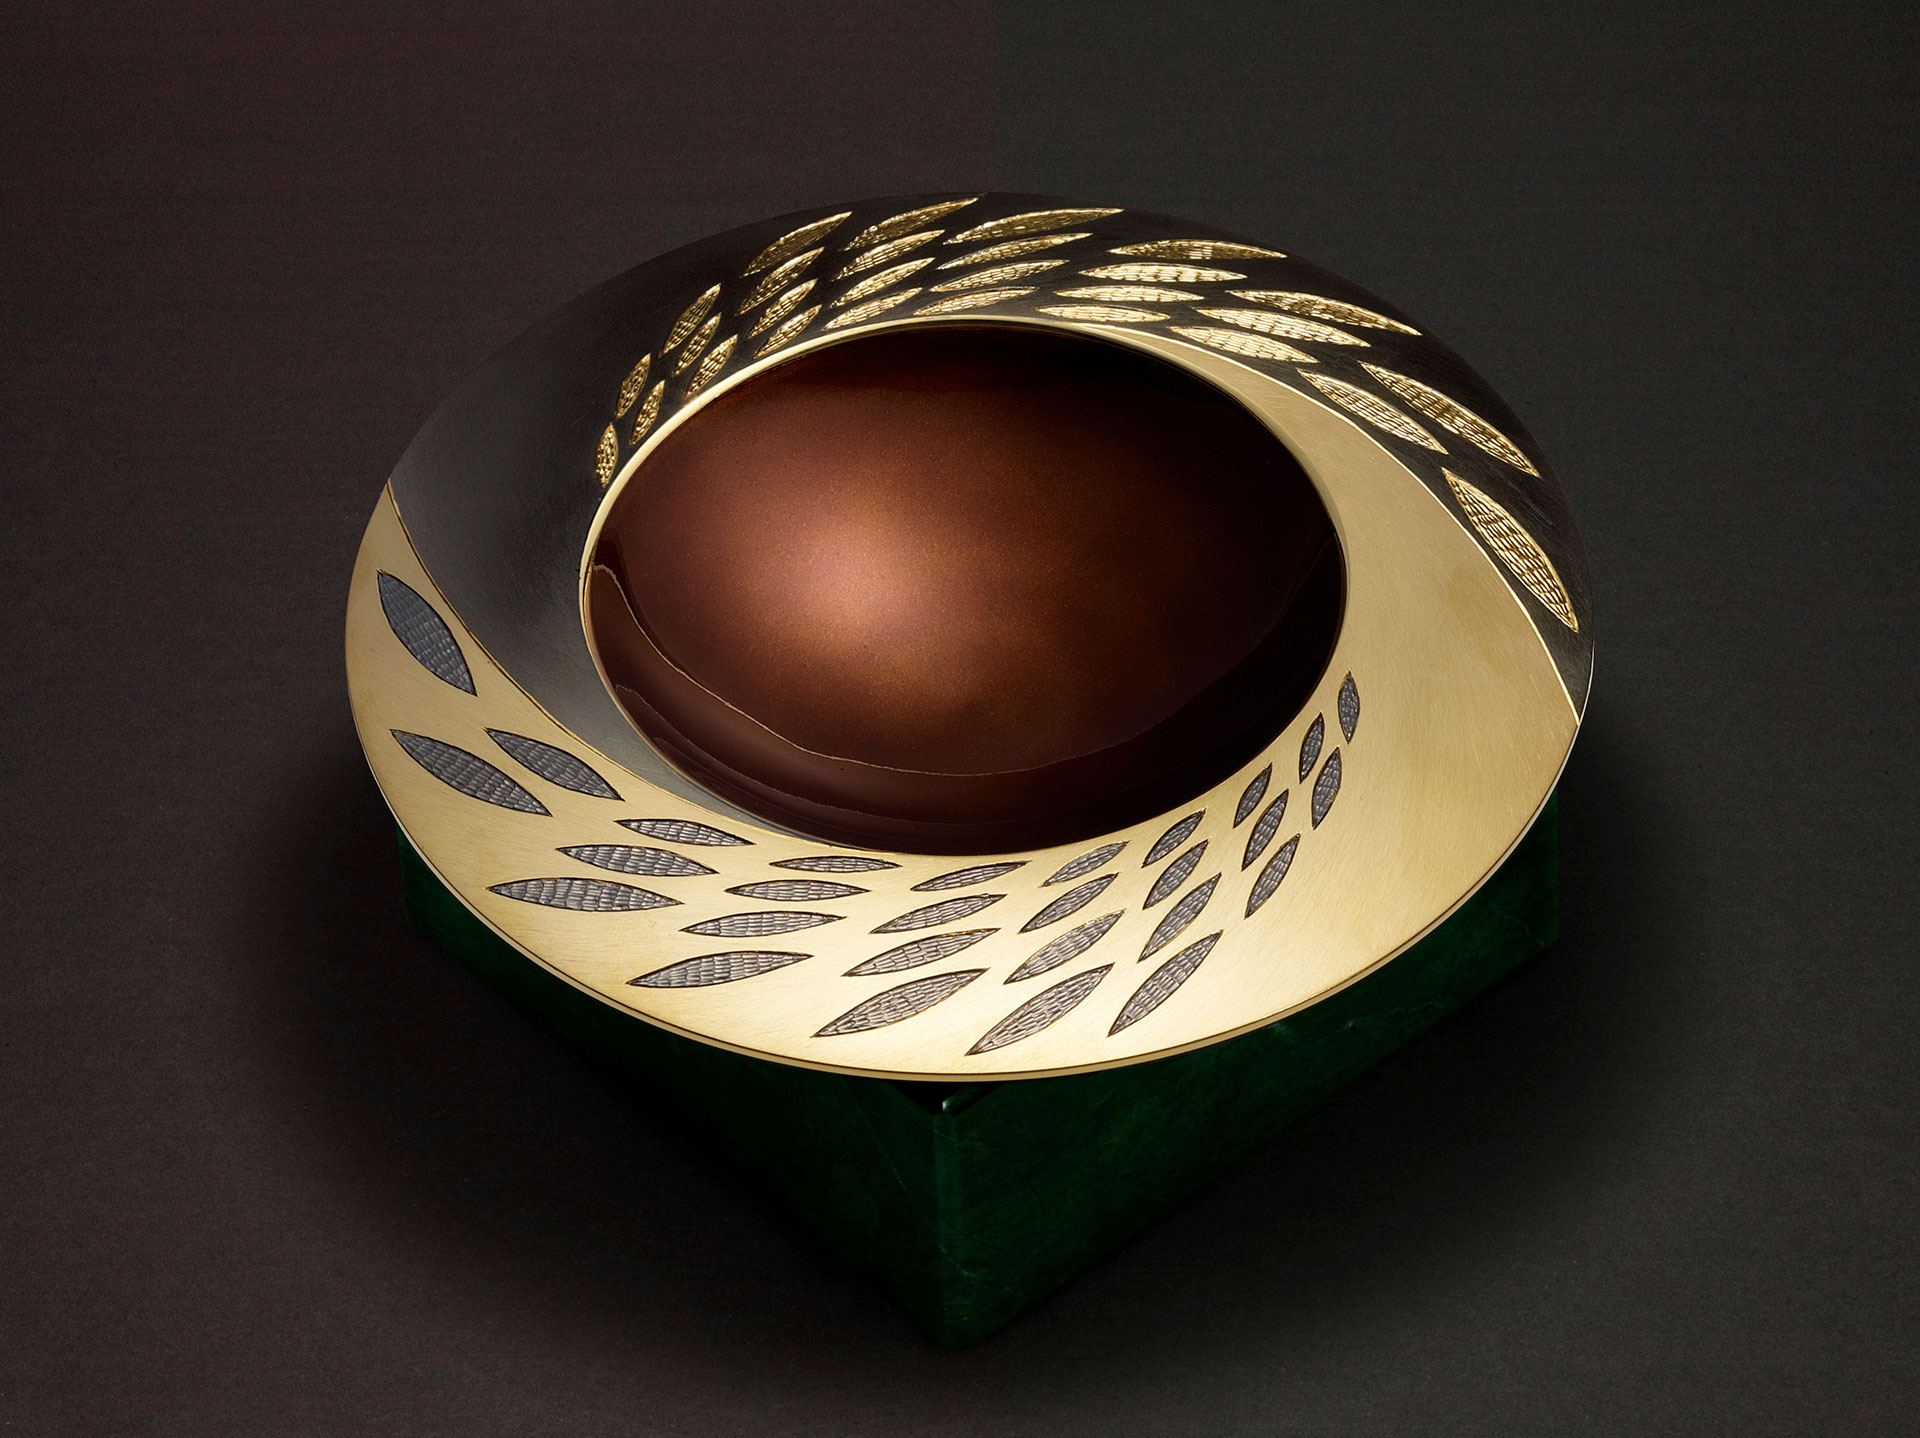 """<a href=""""/jewellery/angle-view-elements-spinning-bowl-earth-2007-reworked-2009-150mm-diameter-silver-hand"""">Angle view: ELEMENTS SPINNING BOWL - EARTH 2007 reworked 2009. 150mm diameter. Silver, hand engraved / carved, black and yellow gilding, earth/bronze/brown enamel. Base in green verdite. Photo : Simon B Armitt.</a>"""